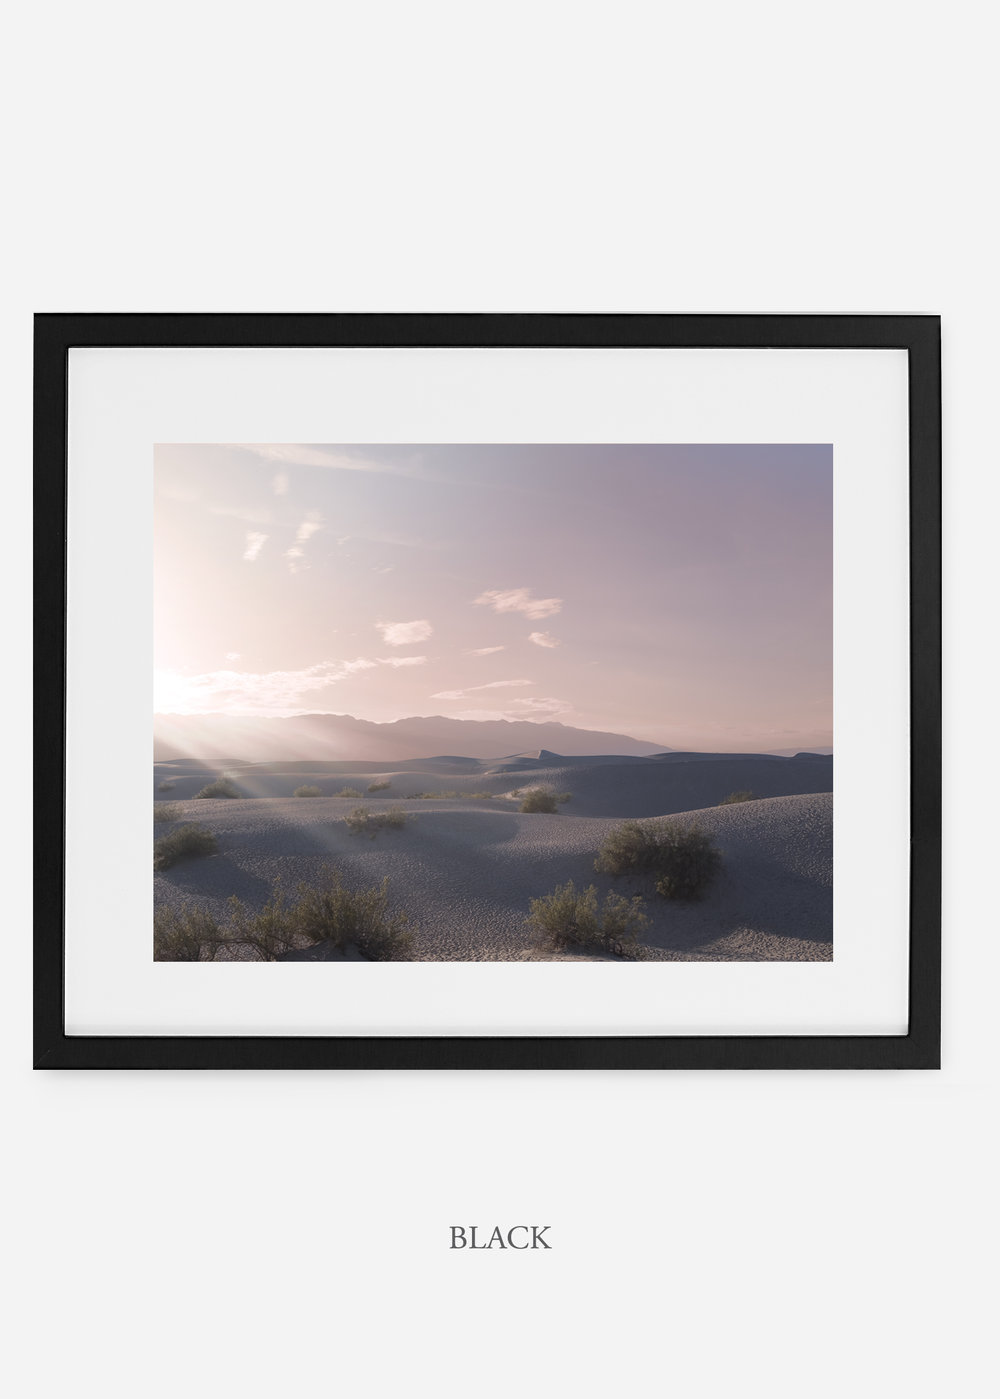 wildercalifornia_blackframe__deathvalley_14_cactus_art_interiordesign_blackandwhite.jpg